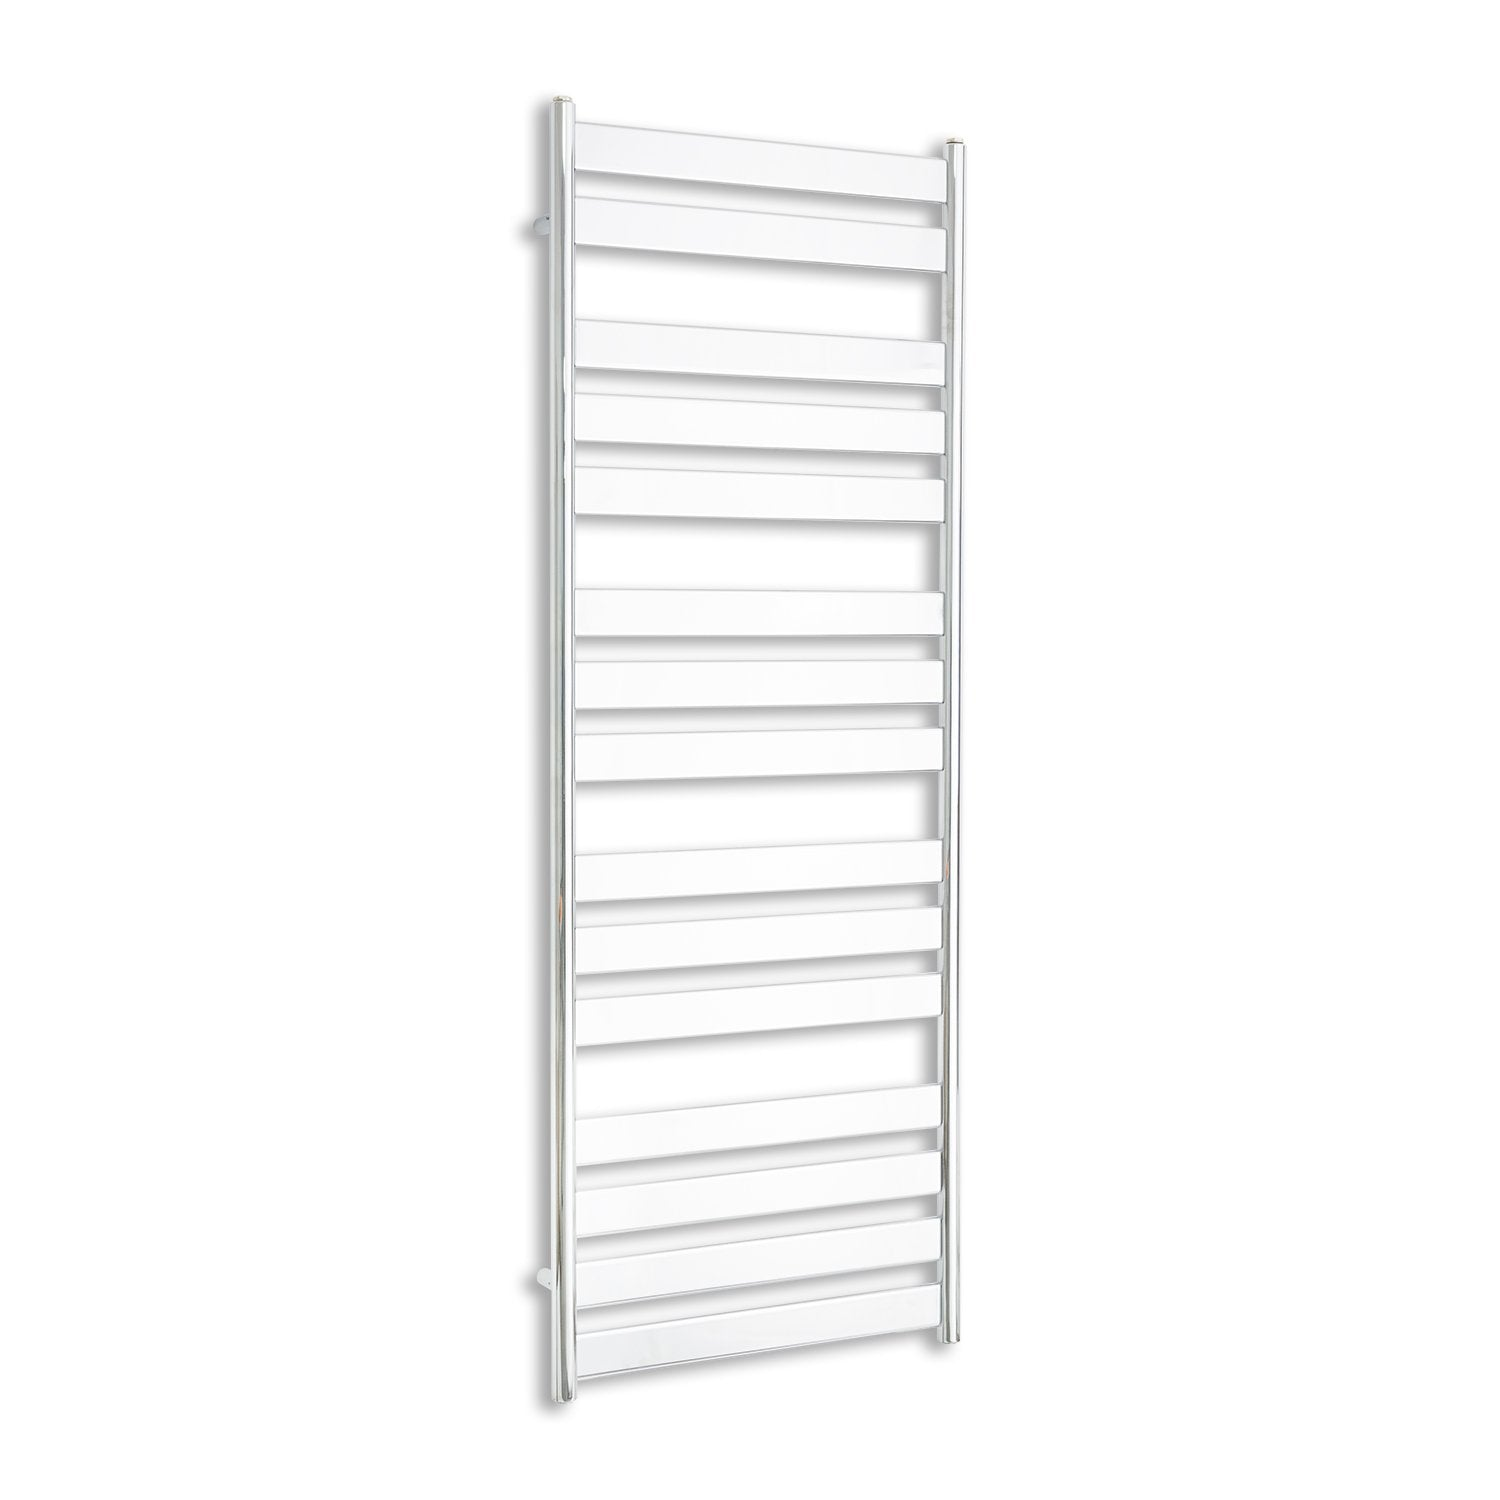 600mm Wide 1600mm High Chrome Towel Rail Radiator